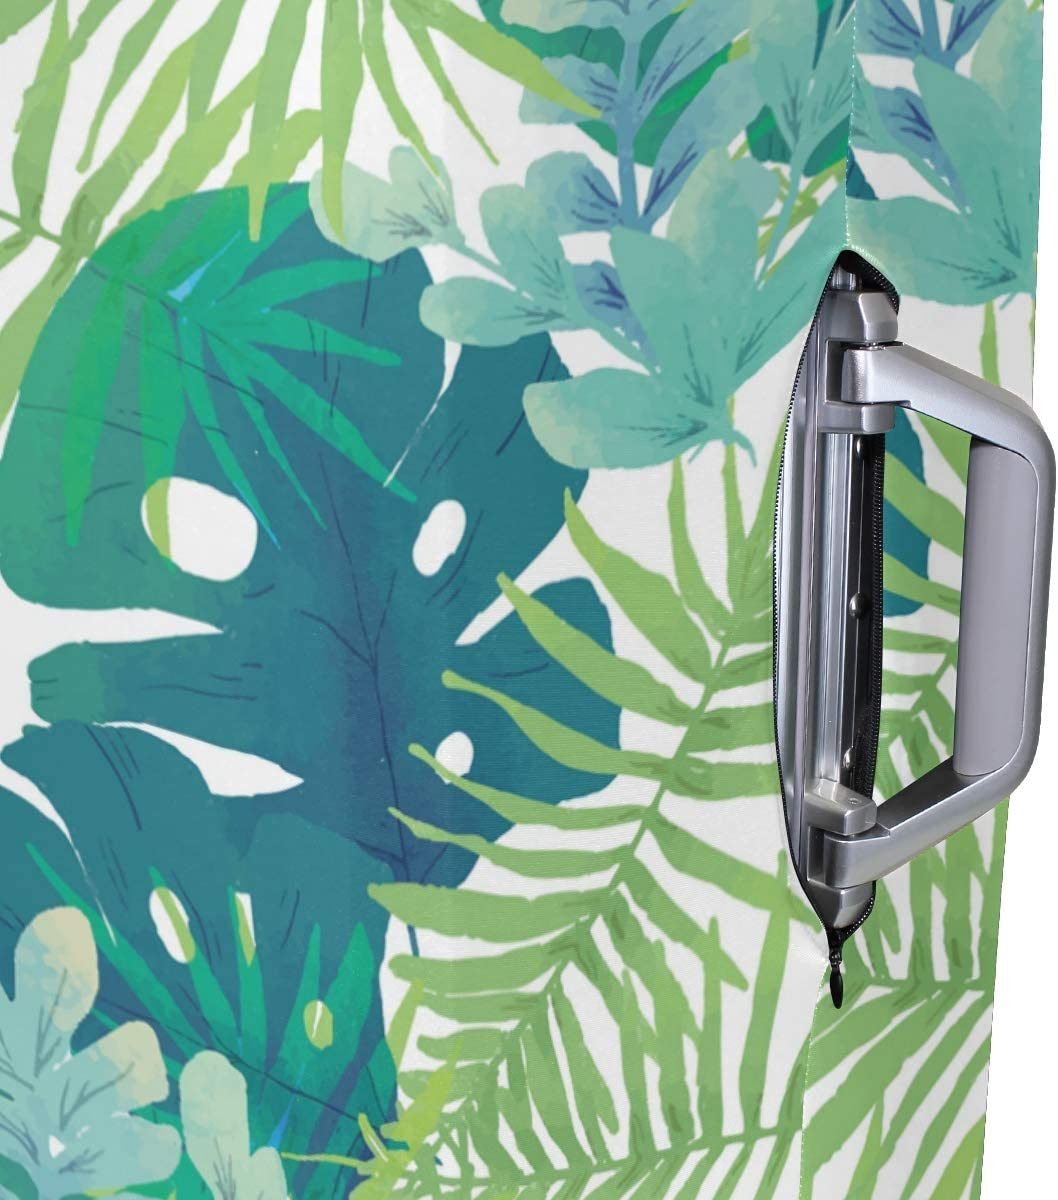 Baggage Covers Tropical Palm Pattern Green Plants Washable Protective Case